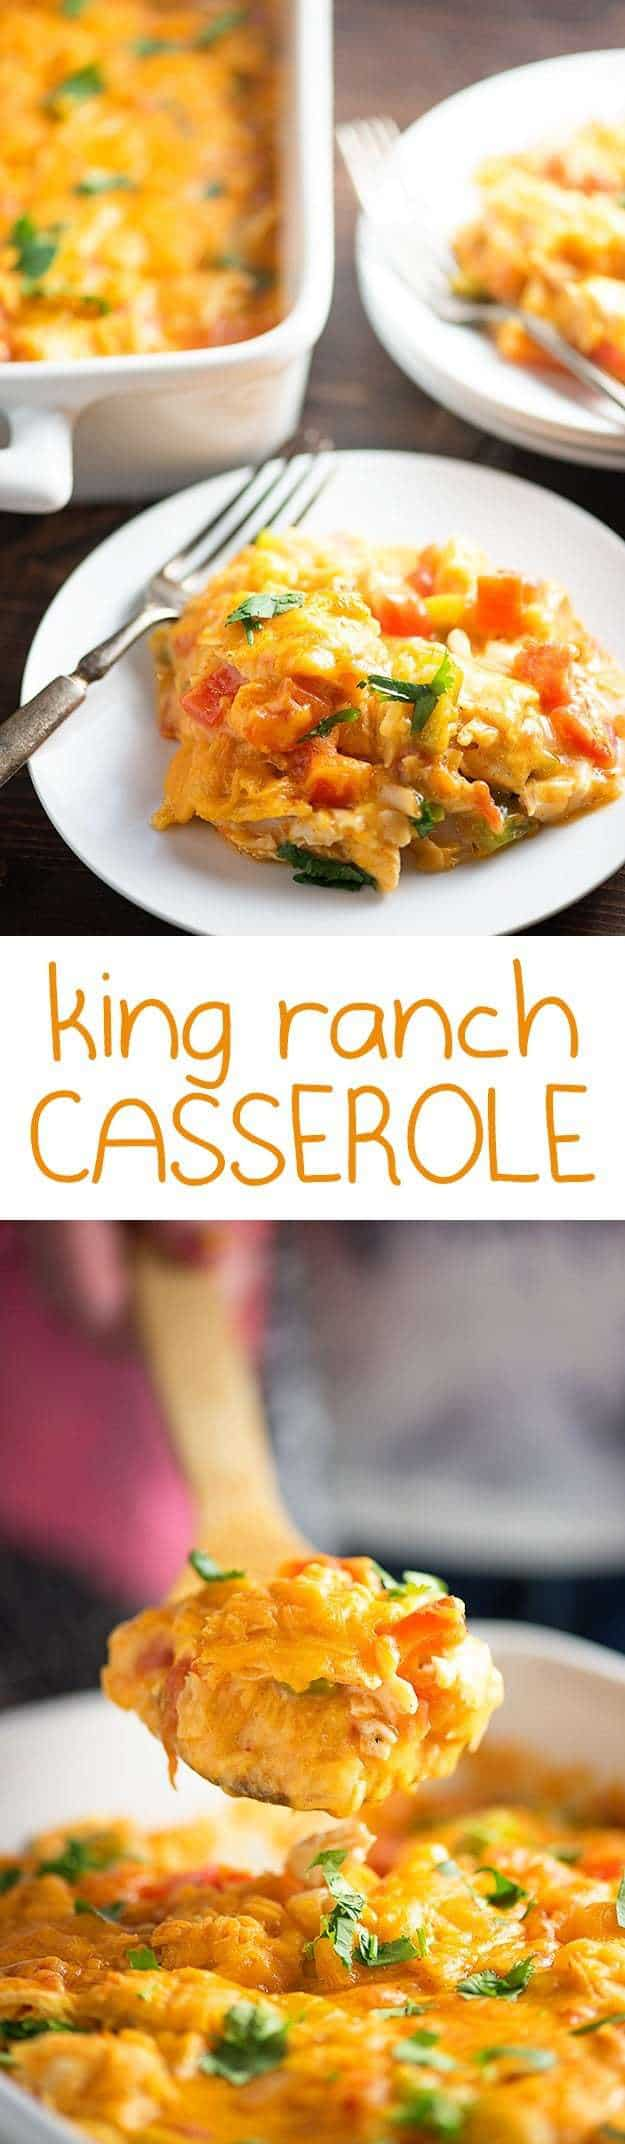 King ranch casserole on a white plate.